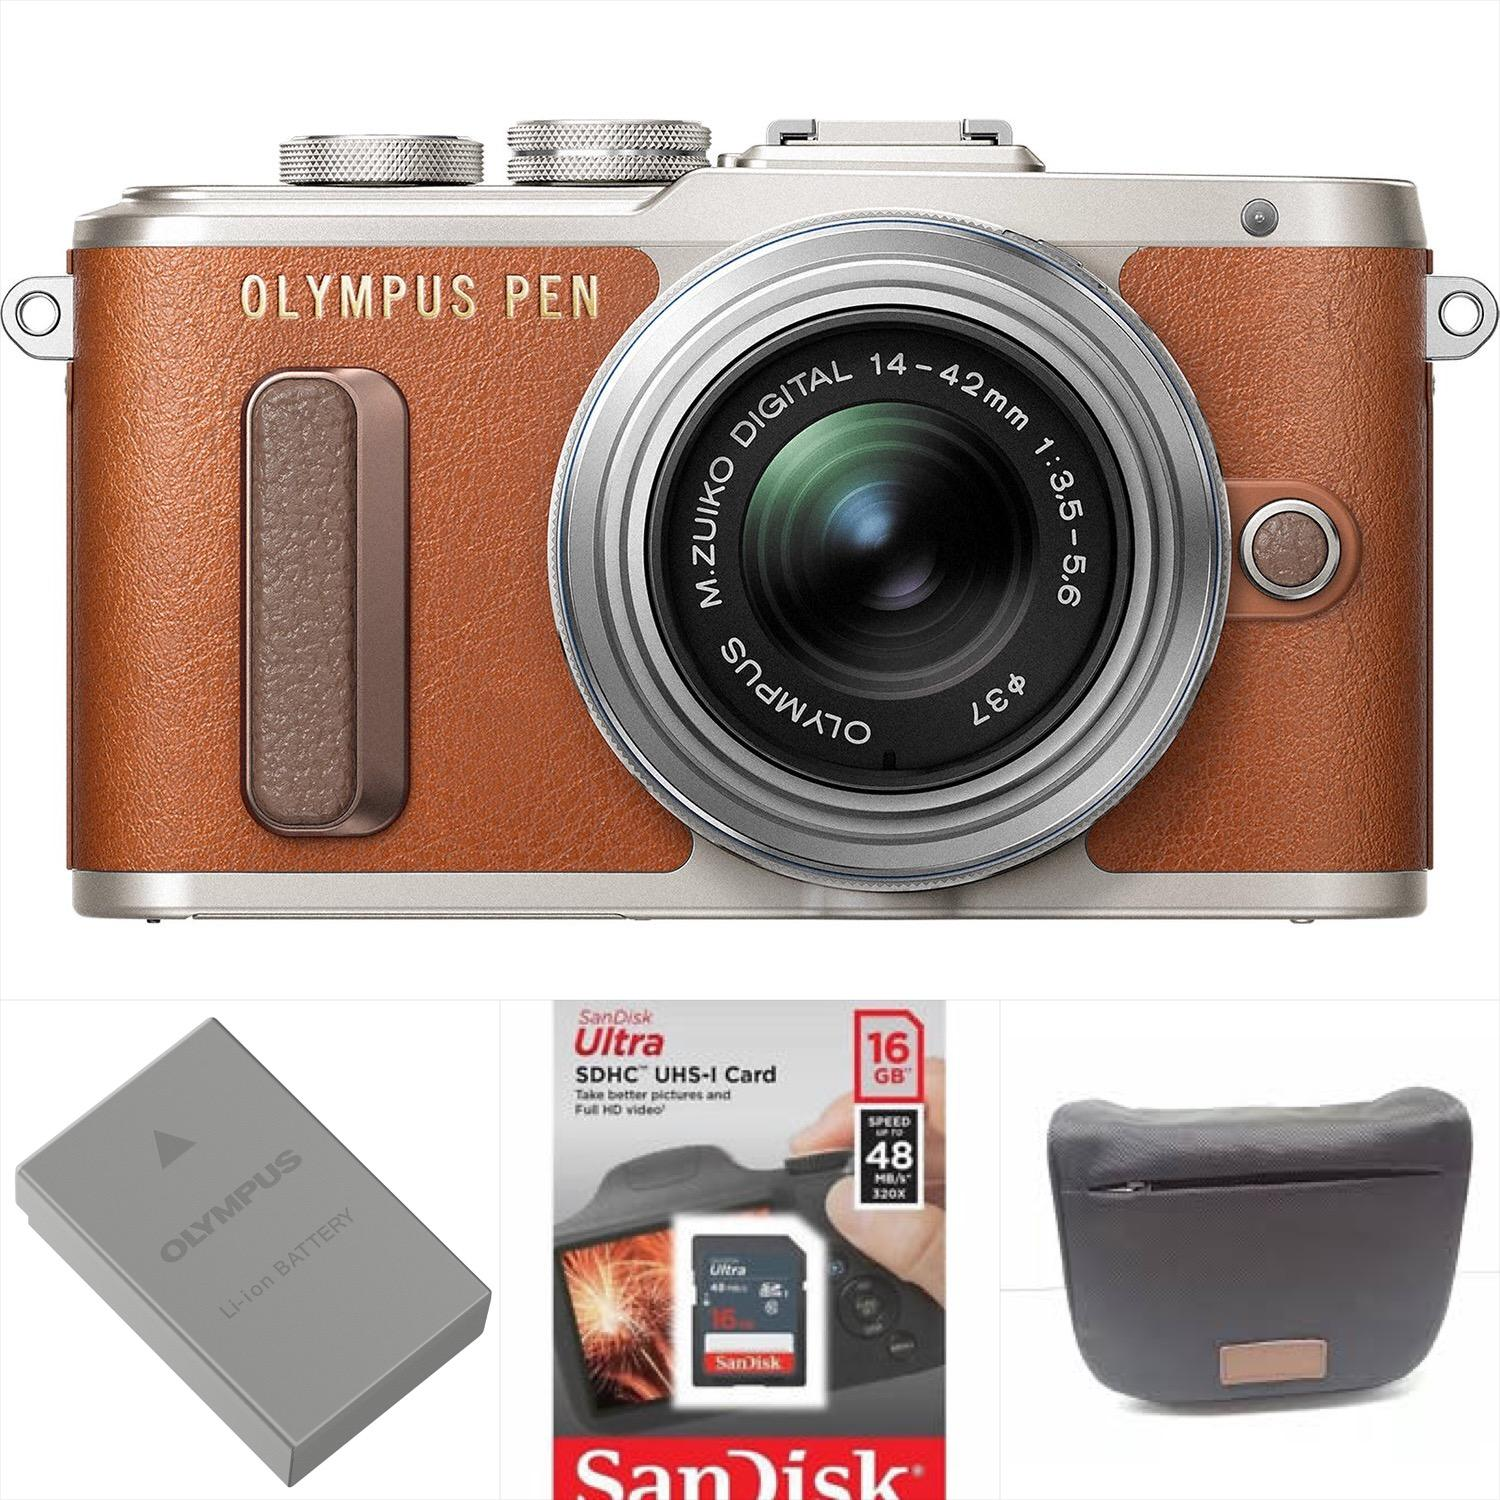 Olympus PEN E-PL8 Mirrorless Micro Four Thirds Digital Camera with 14-42mm Lens (Brown)Warranty